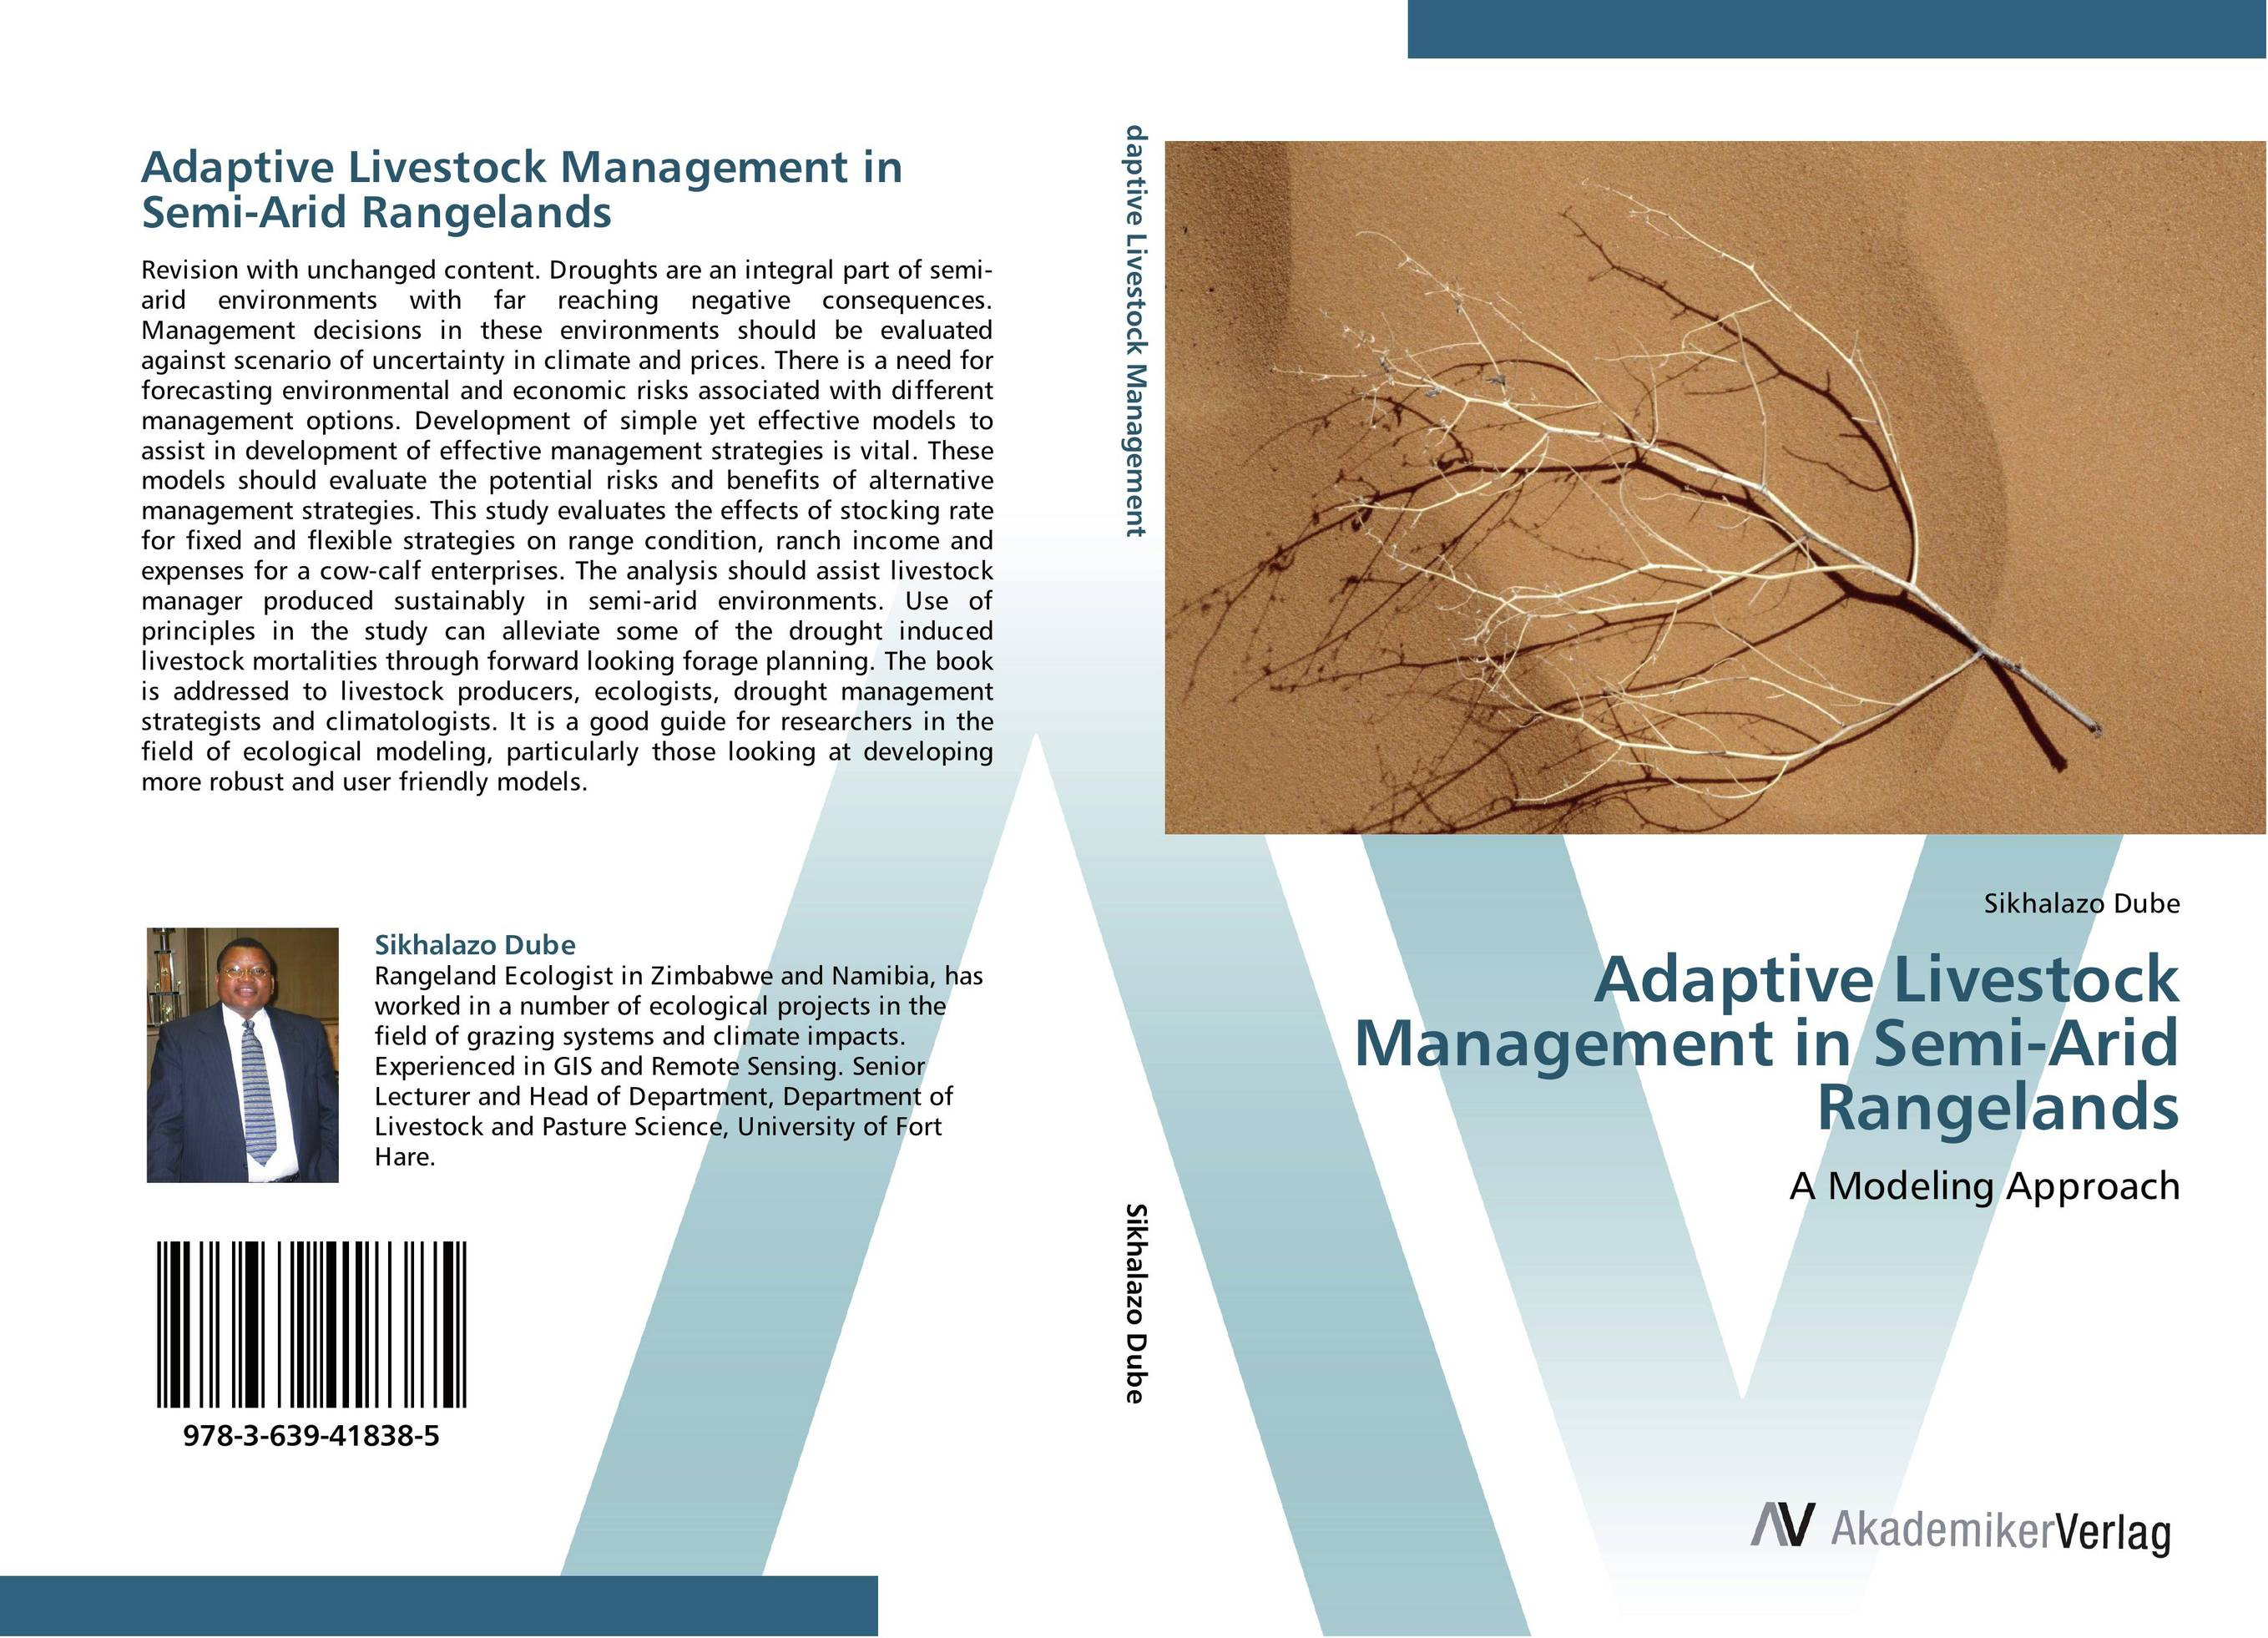 Adaptive Livestock Management in Semi-Arid Rangelands moorad choudhry fixed income markets management trading and hedging